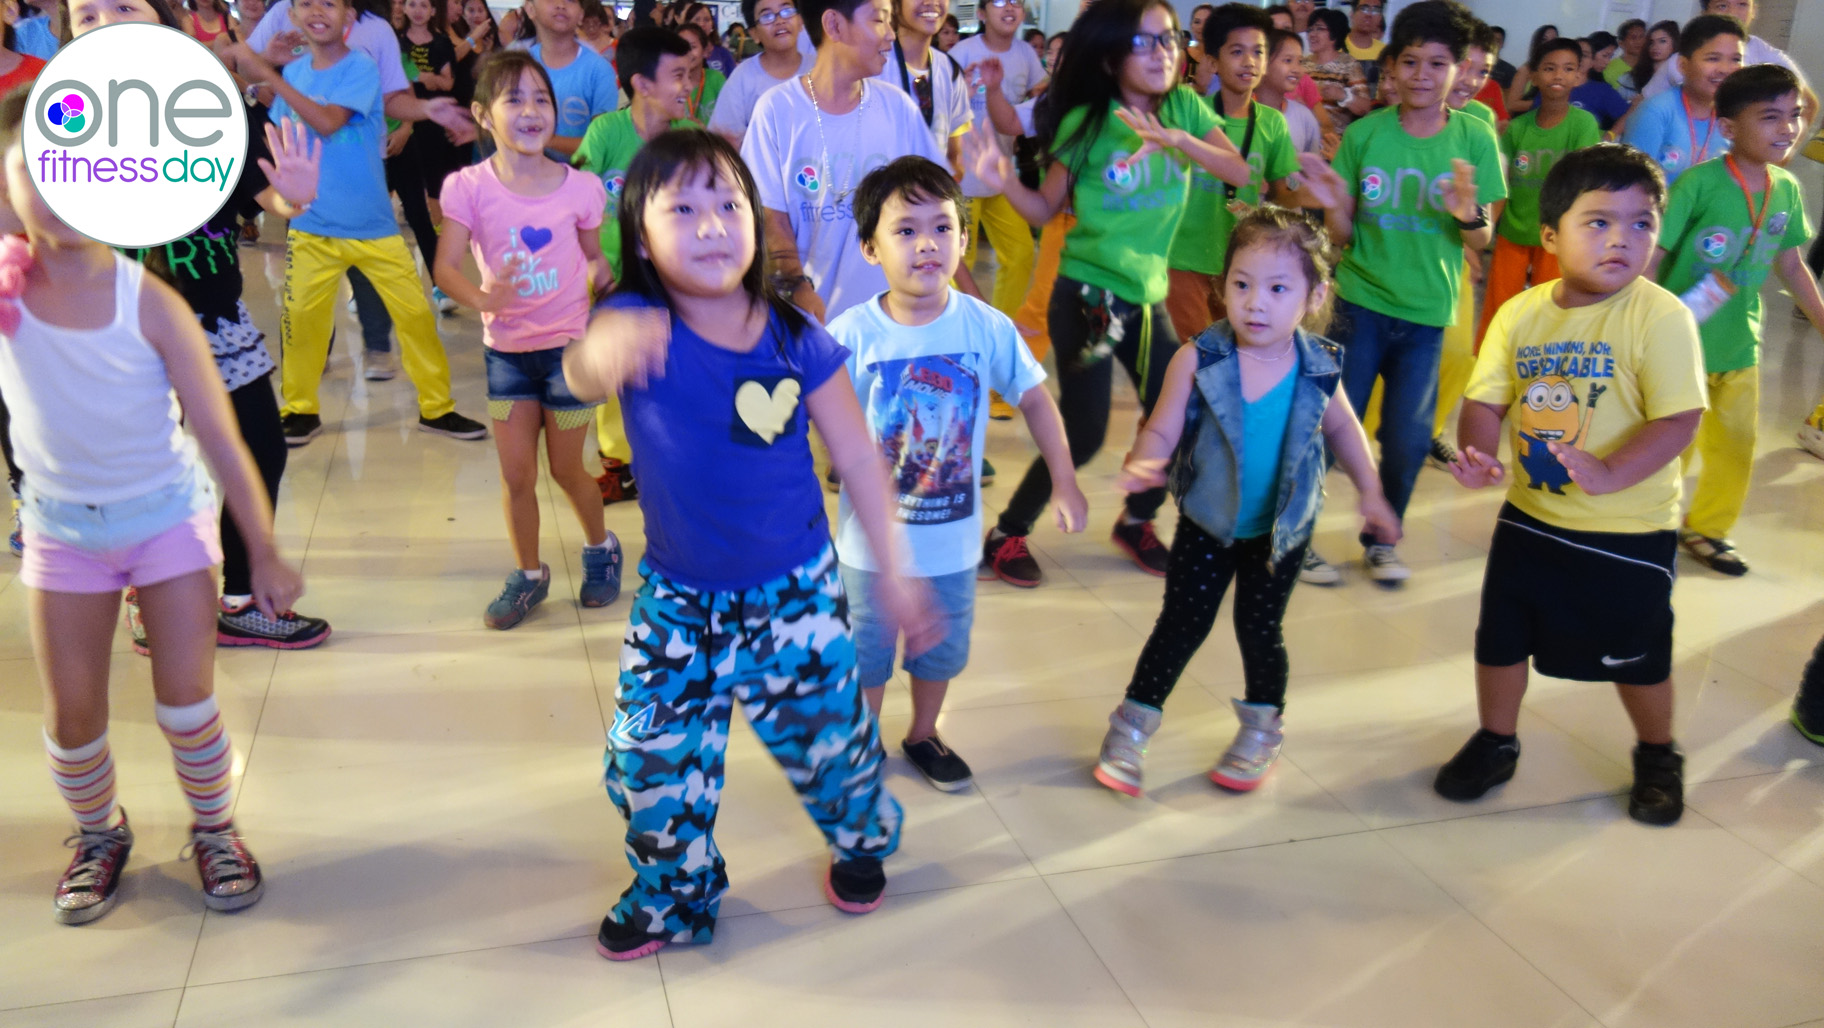 dsc07938 copy kristie bonifacio live love party,Childrens Zumba Clothes